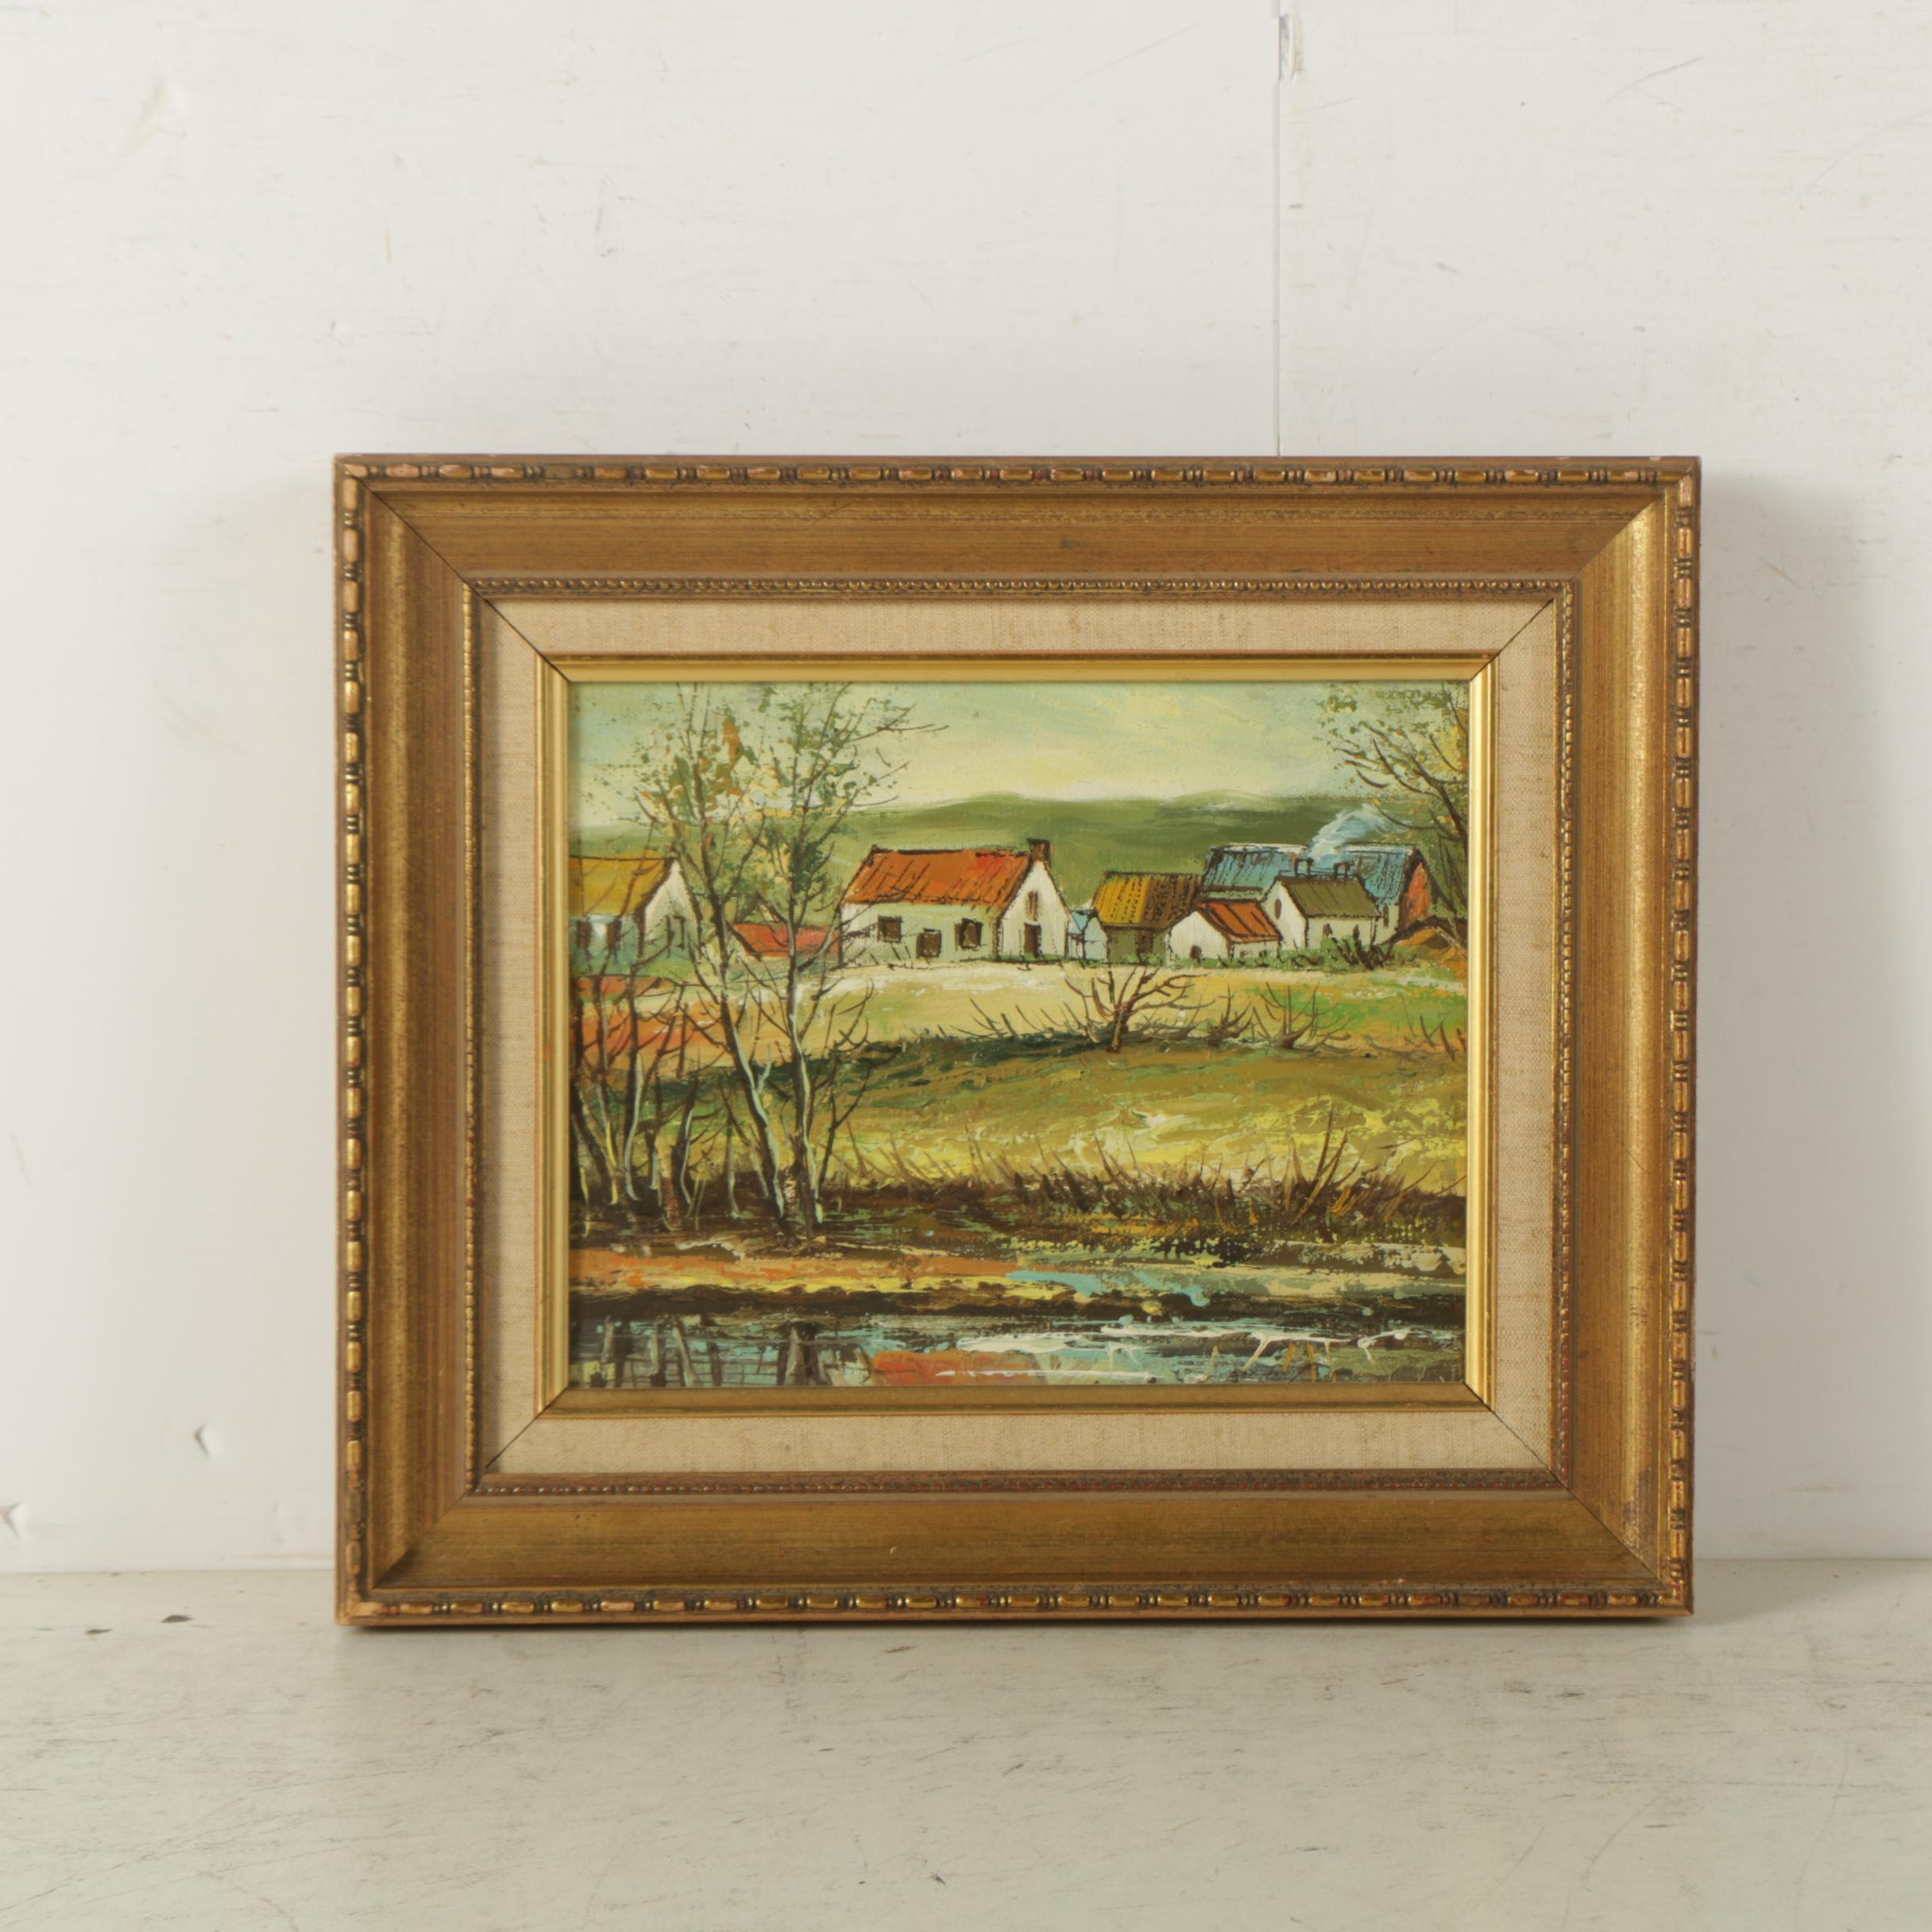 Oil Painting on Canvas of Rural Town Scene